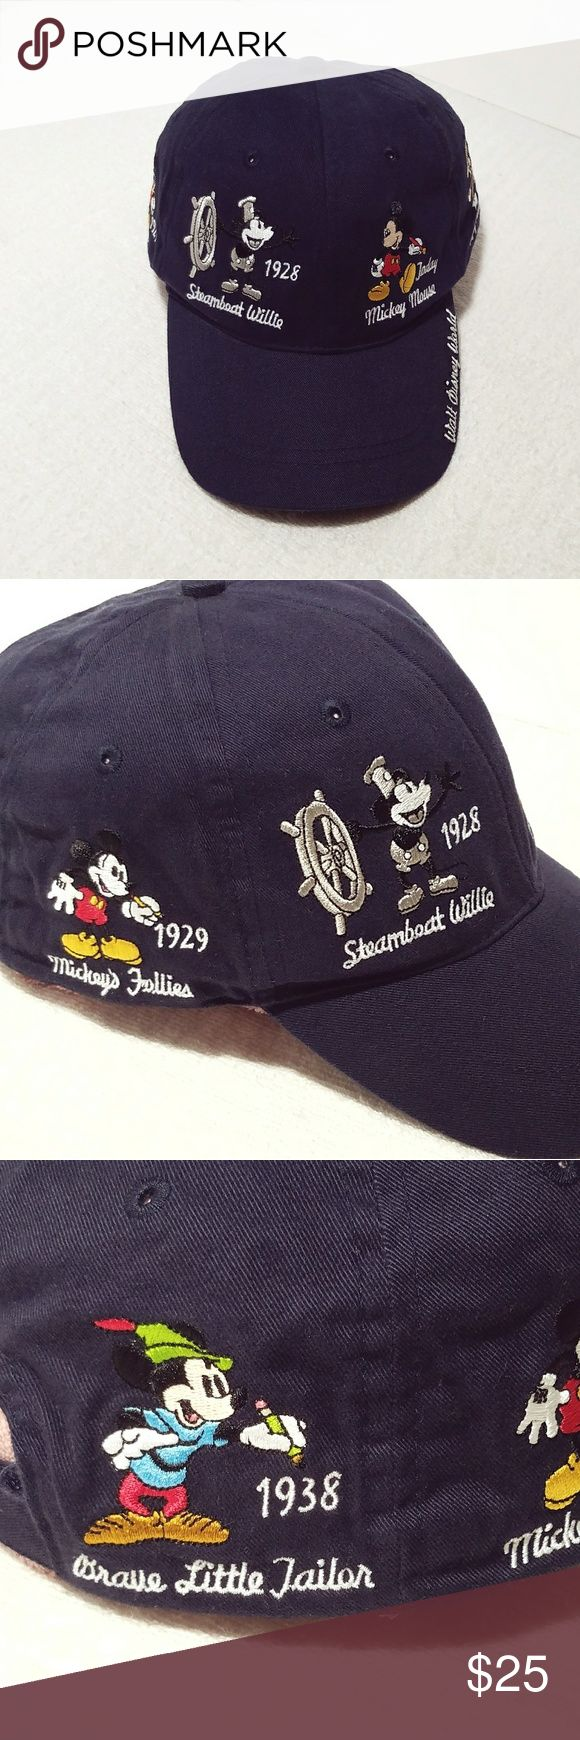 Mickey Mouse Walt Disney World Baseball Cap Vintage Mickey Mouse Walt Disney World Baseball Adjustable Strapback Cap. That is beat up, but no major damage, very clean, no stains, no rips, no tears. This navy blue adjustable baseball cap material is 100% cotton the art on his baseball cap is very bright and looks new. The hat is beat up a bit but will shape up once on your head. This vintage collectible hat is very clean and recommended for adult handling only. Disney Accessories Hats